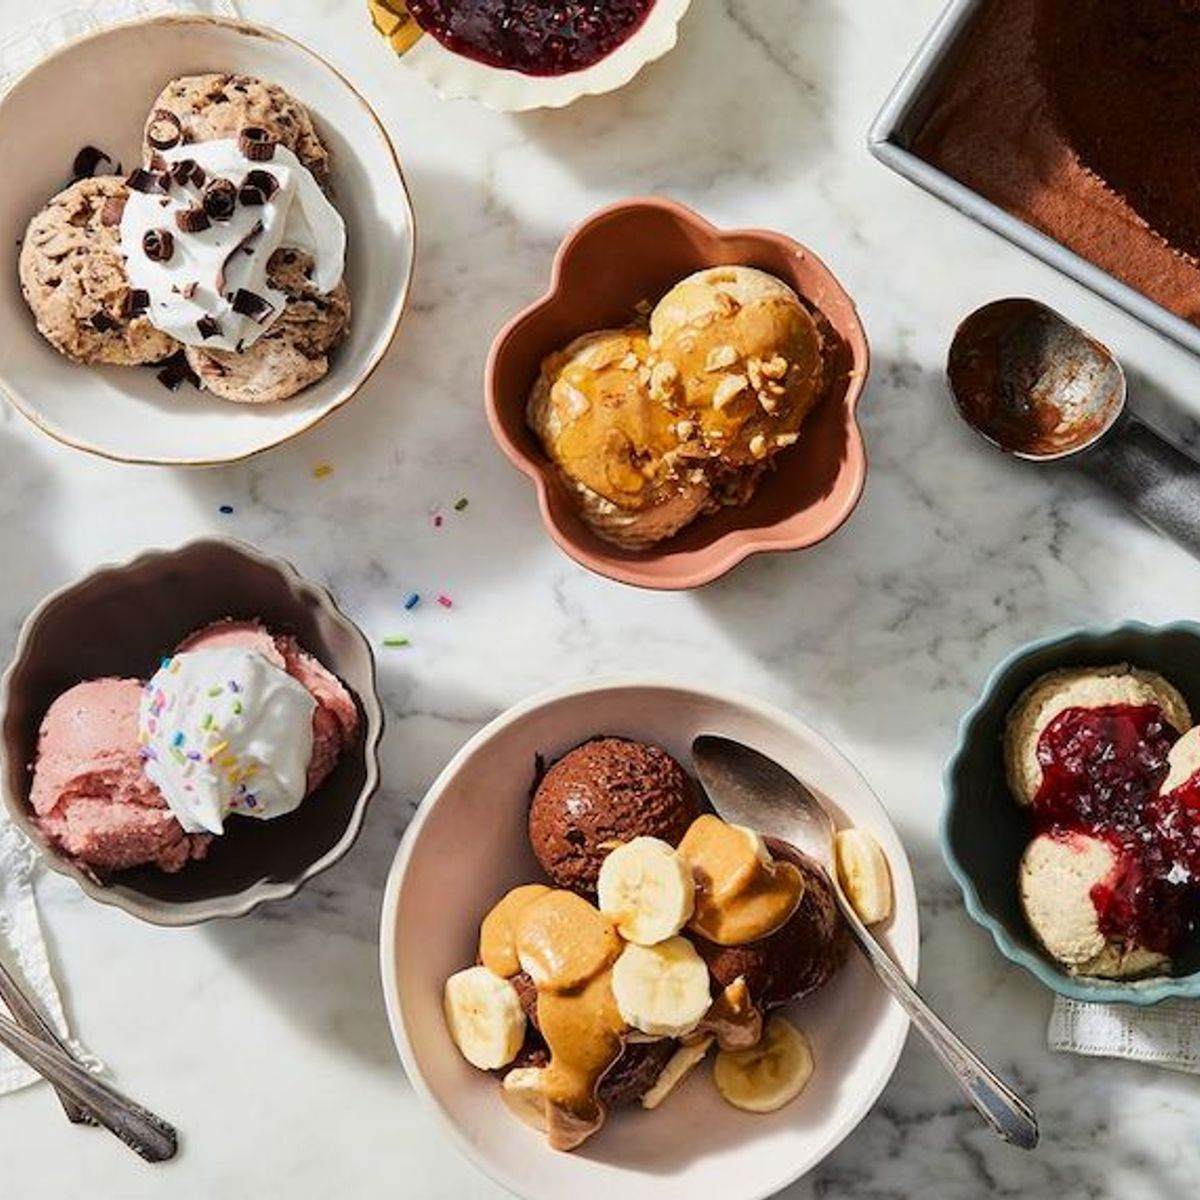 The vegan one-ingredient ice cream we're not talking about enough